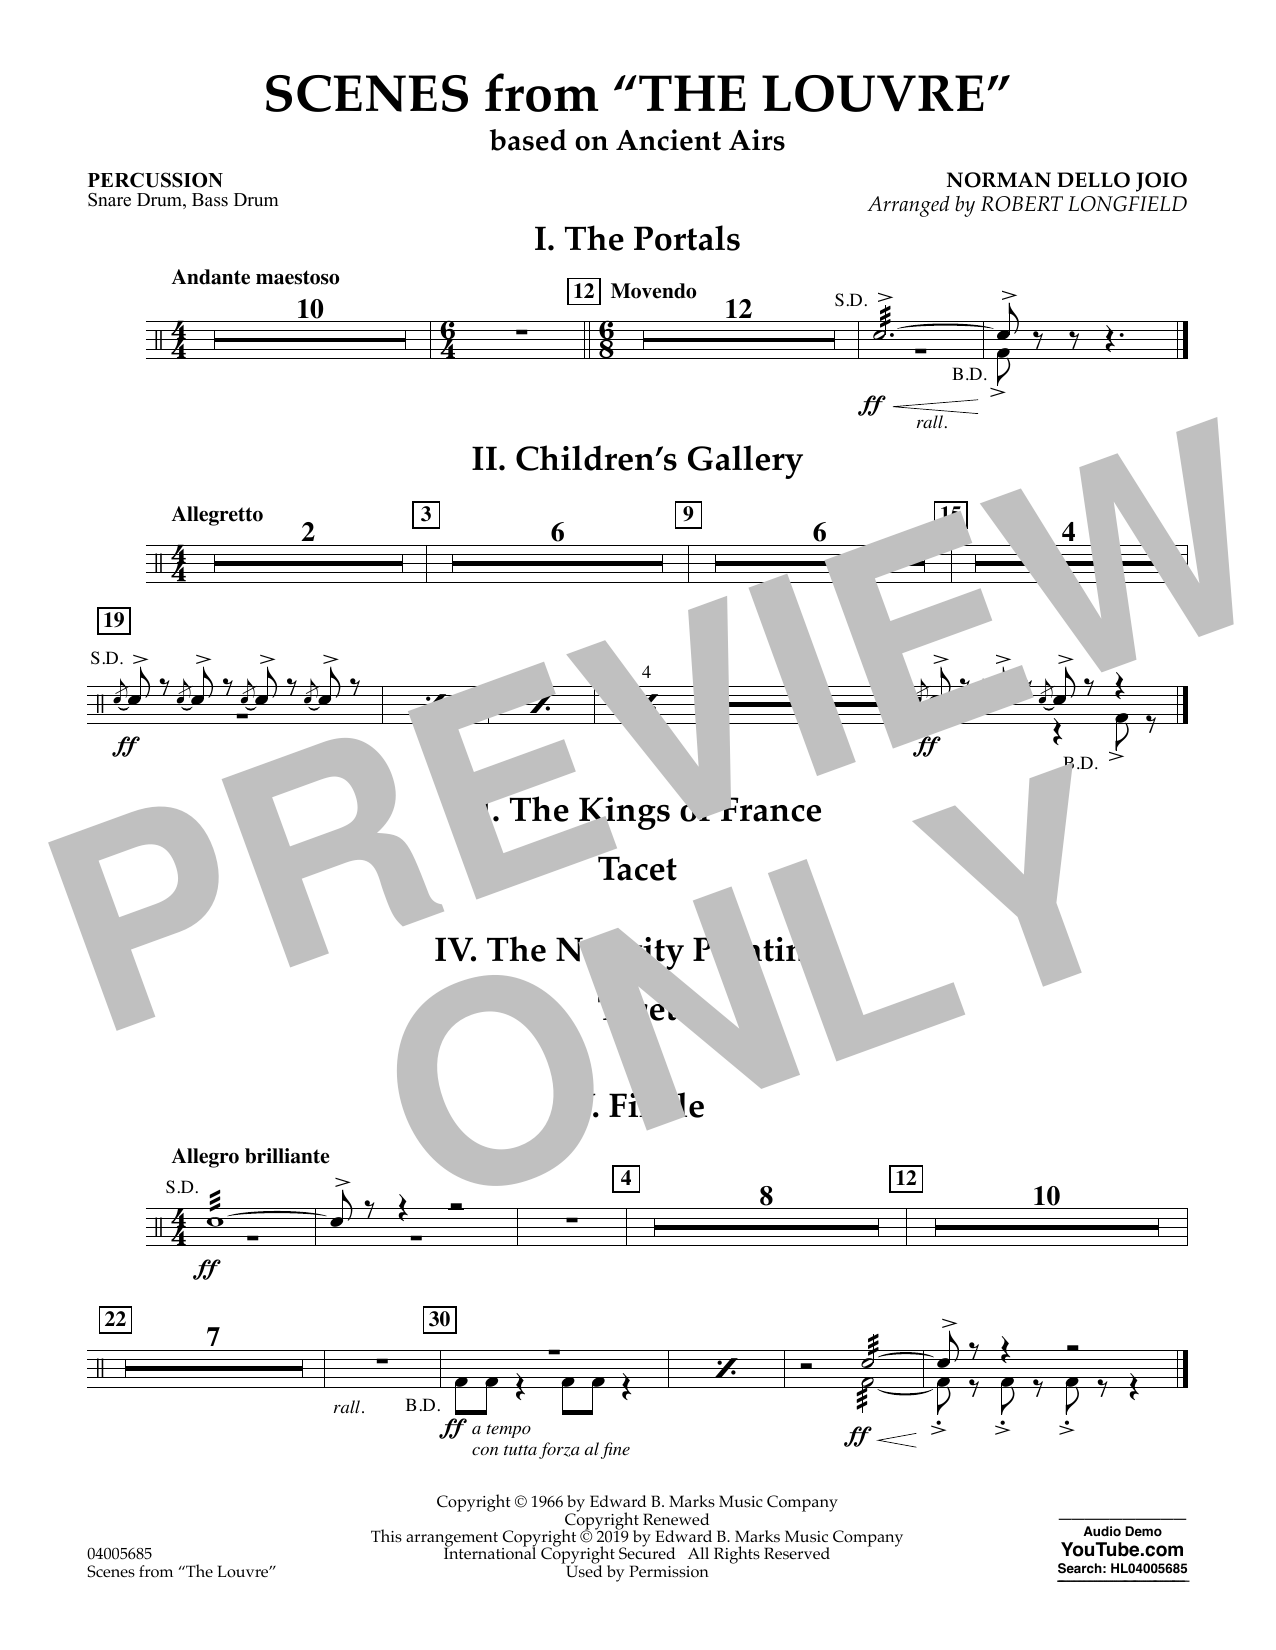 Norman Dello Joio Scenes from the Louvre (arr. Robert Longfield) - Percussion sheet music preview music notes and score for Concert Band including 1 page(s)